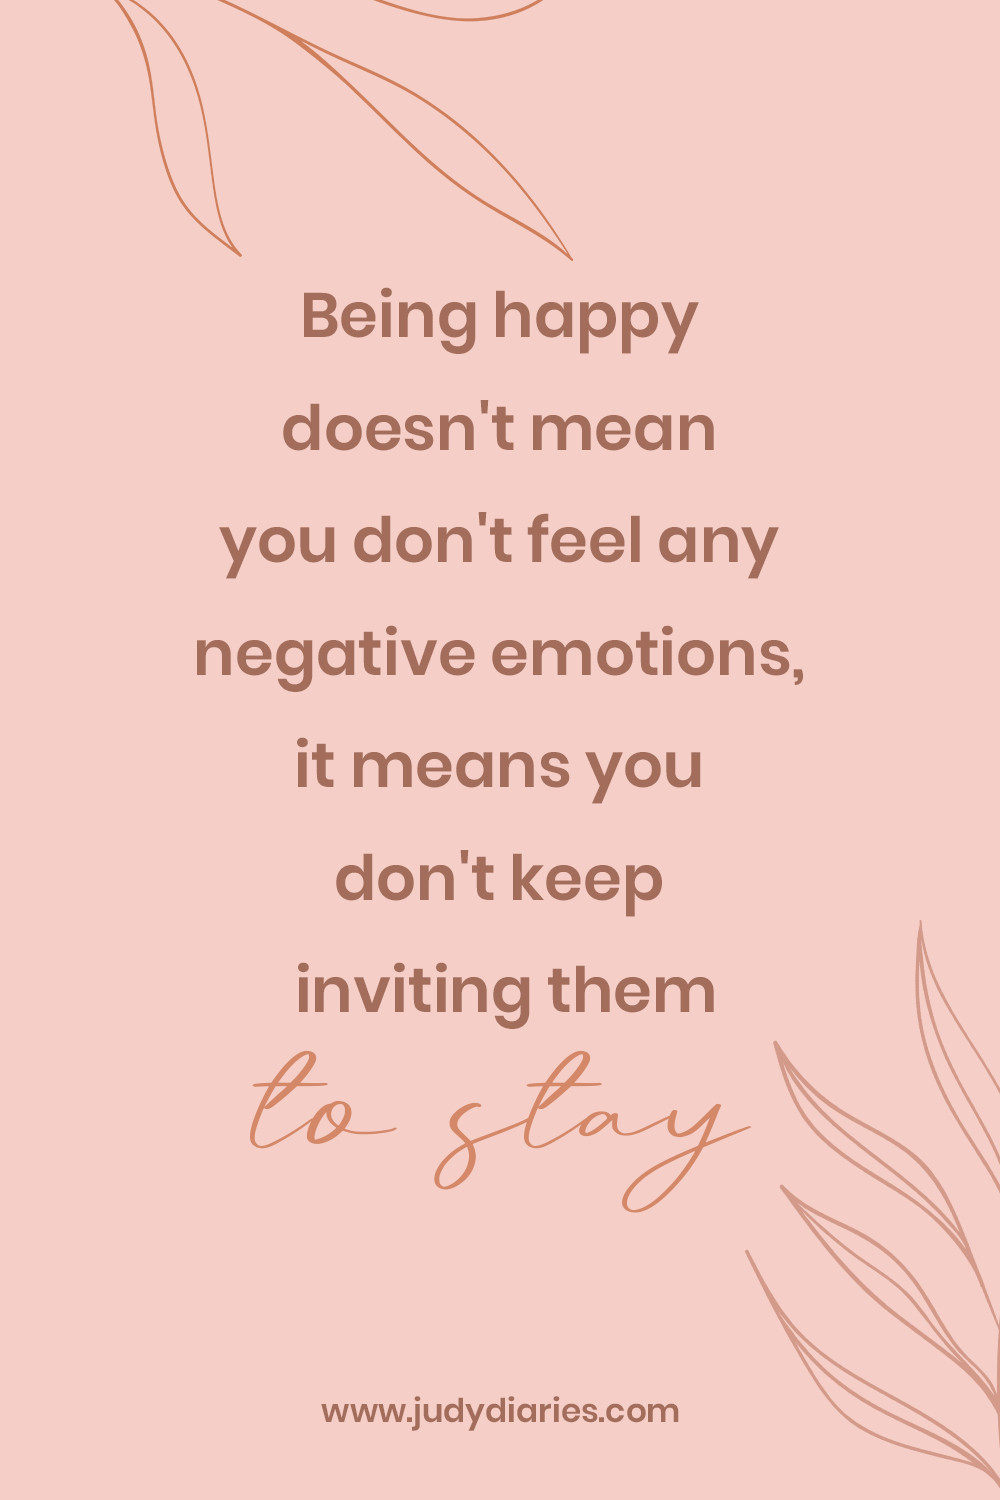 happiness quotes on being a happy person doesn't mean you don't feel negative emotions